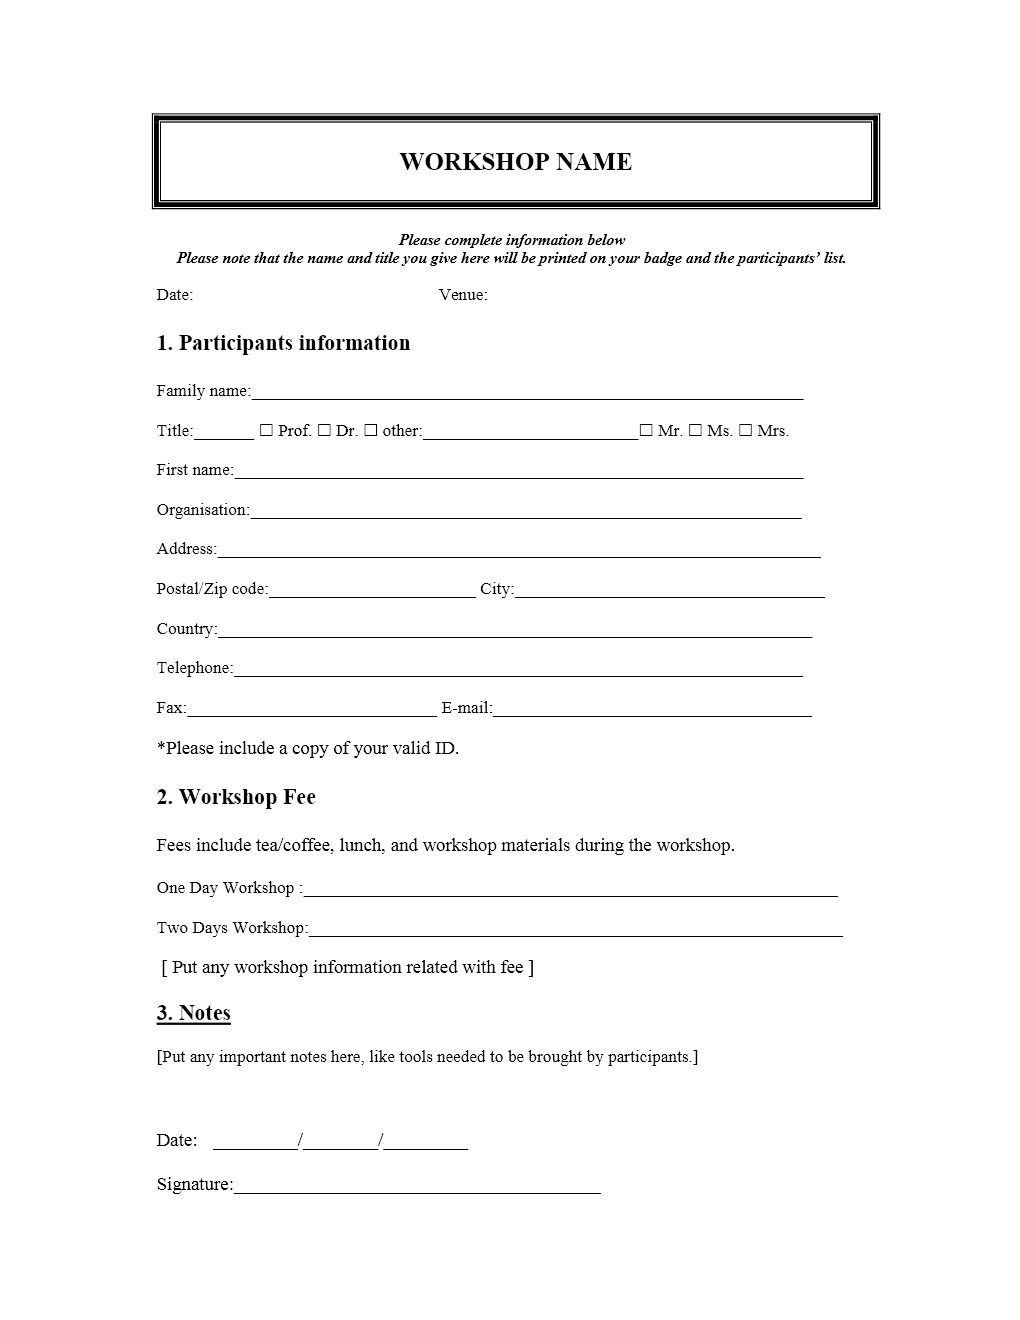 Workshop Registration Form – Sign Up Form Template Word